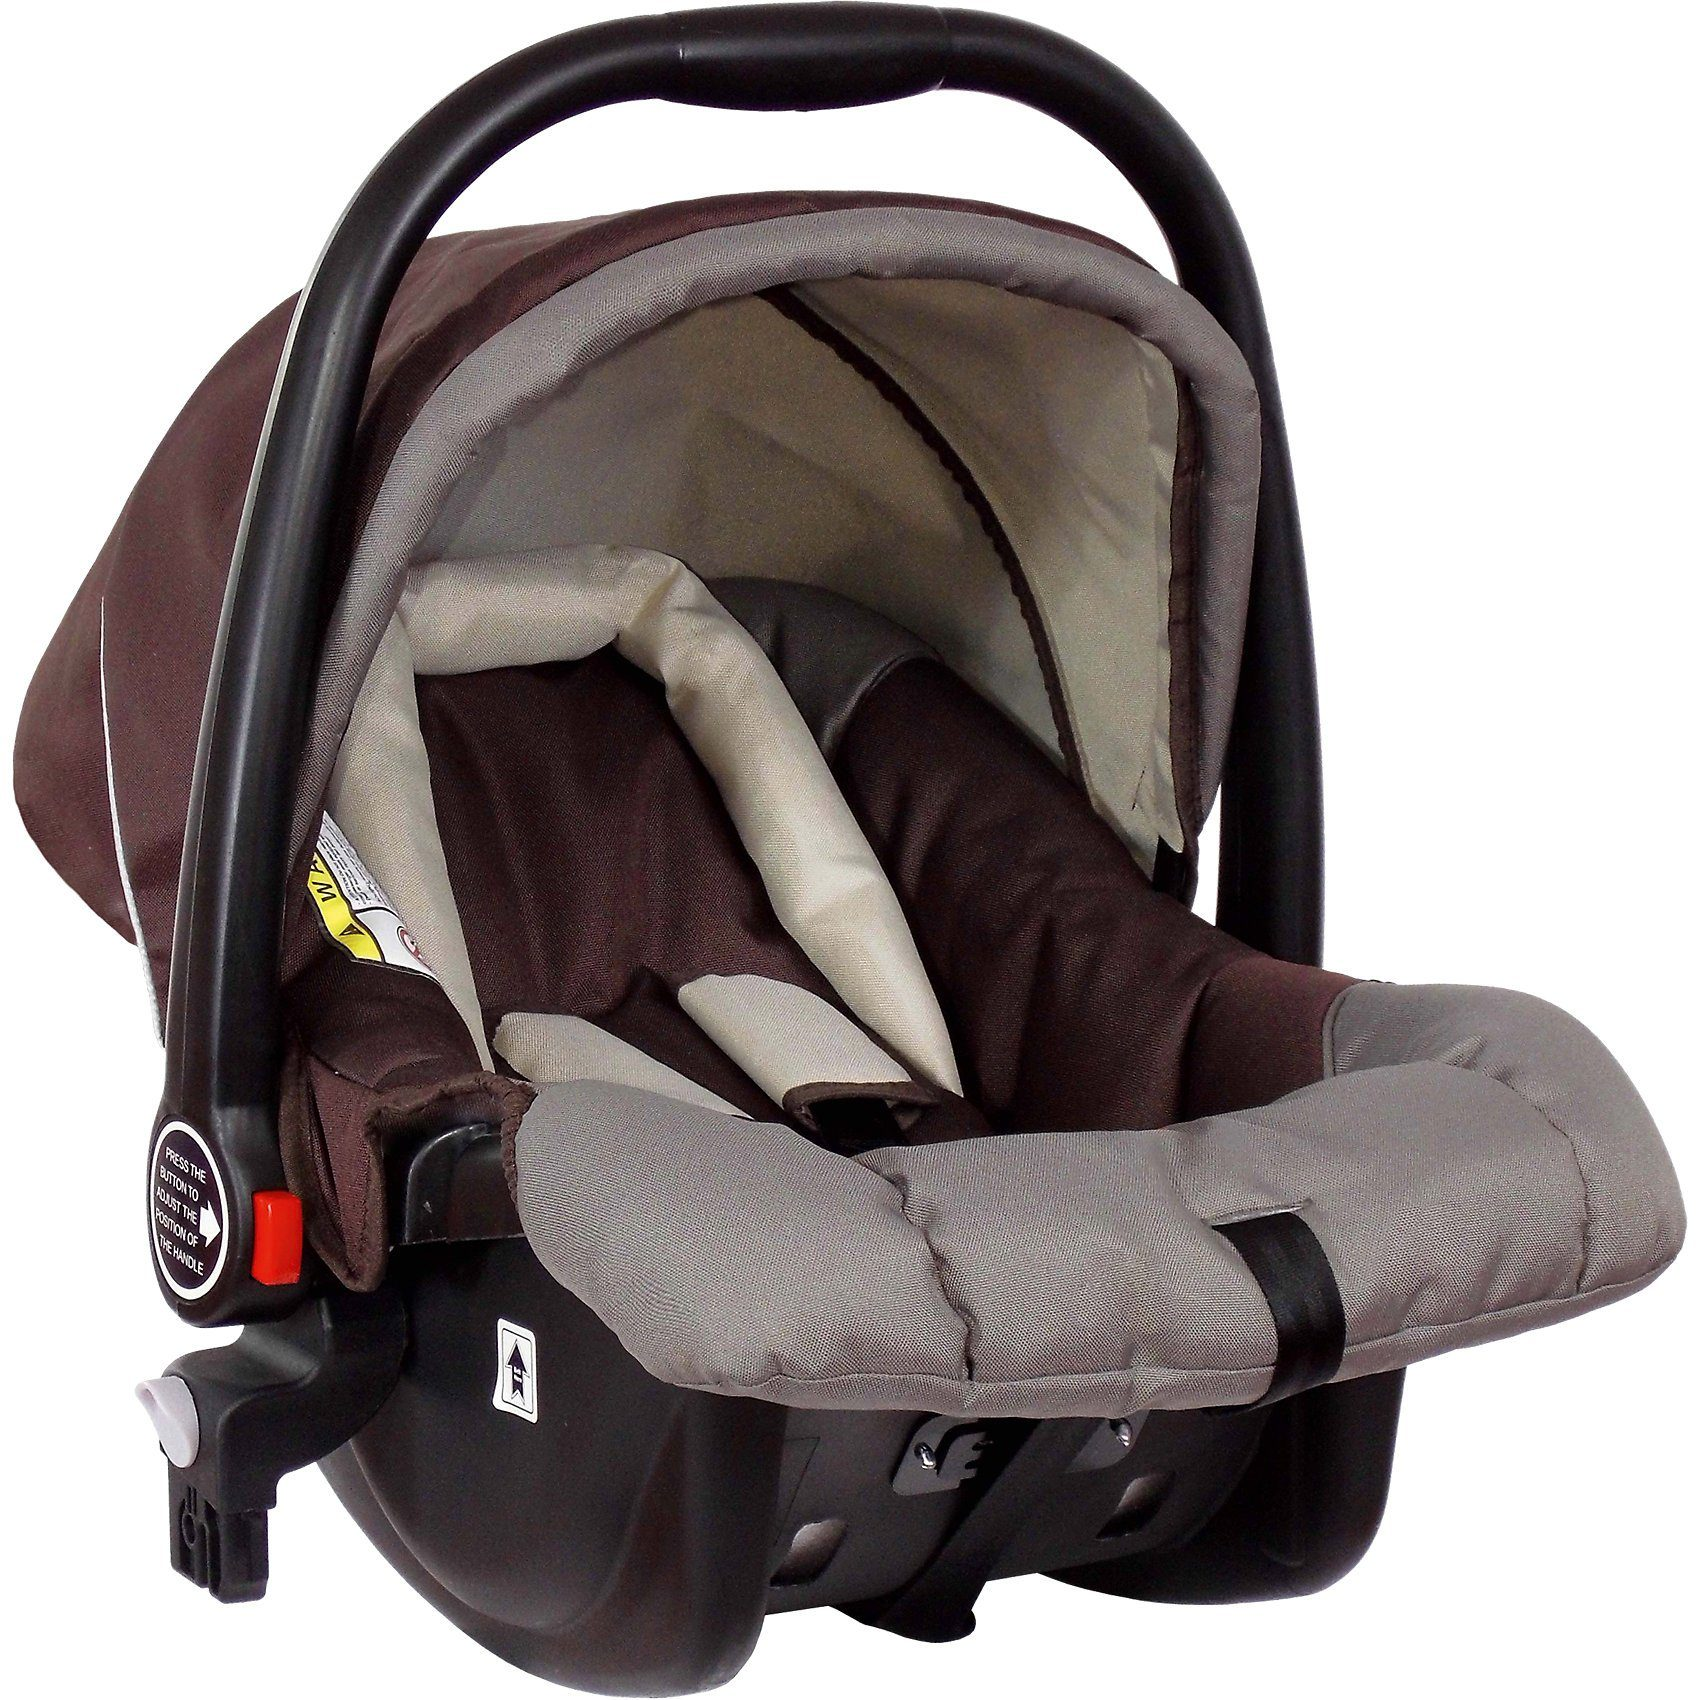 Zekiwa Babyschale für Buggy Single, coffee